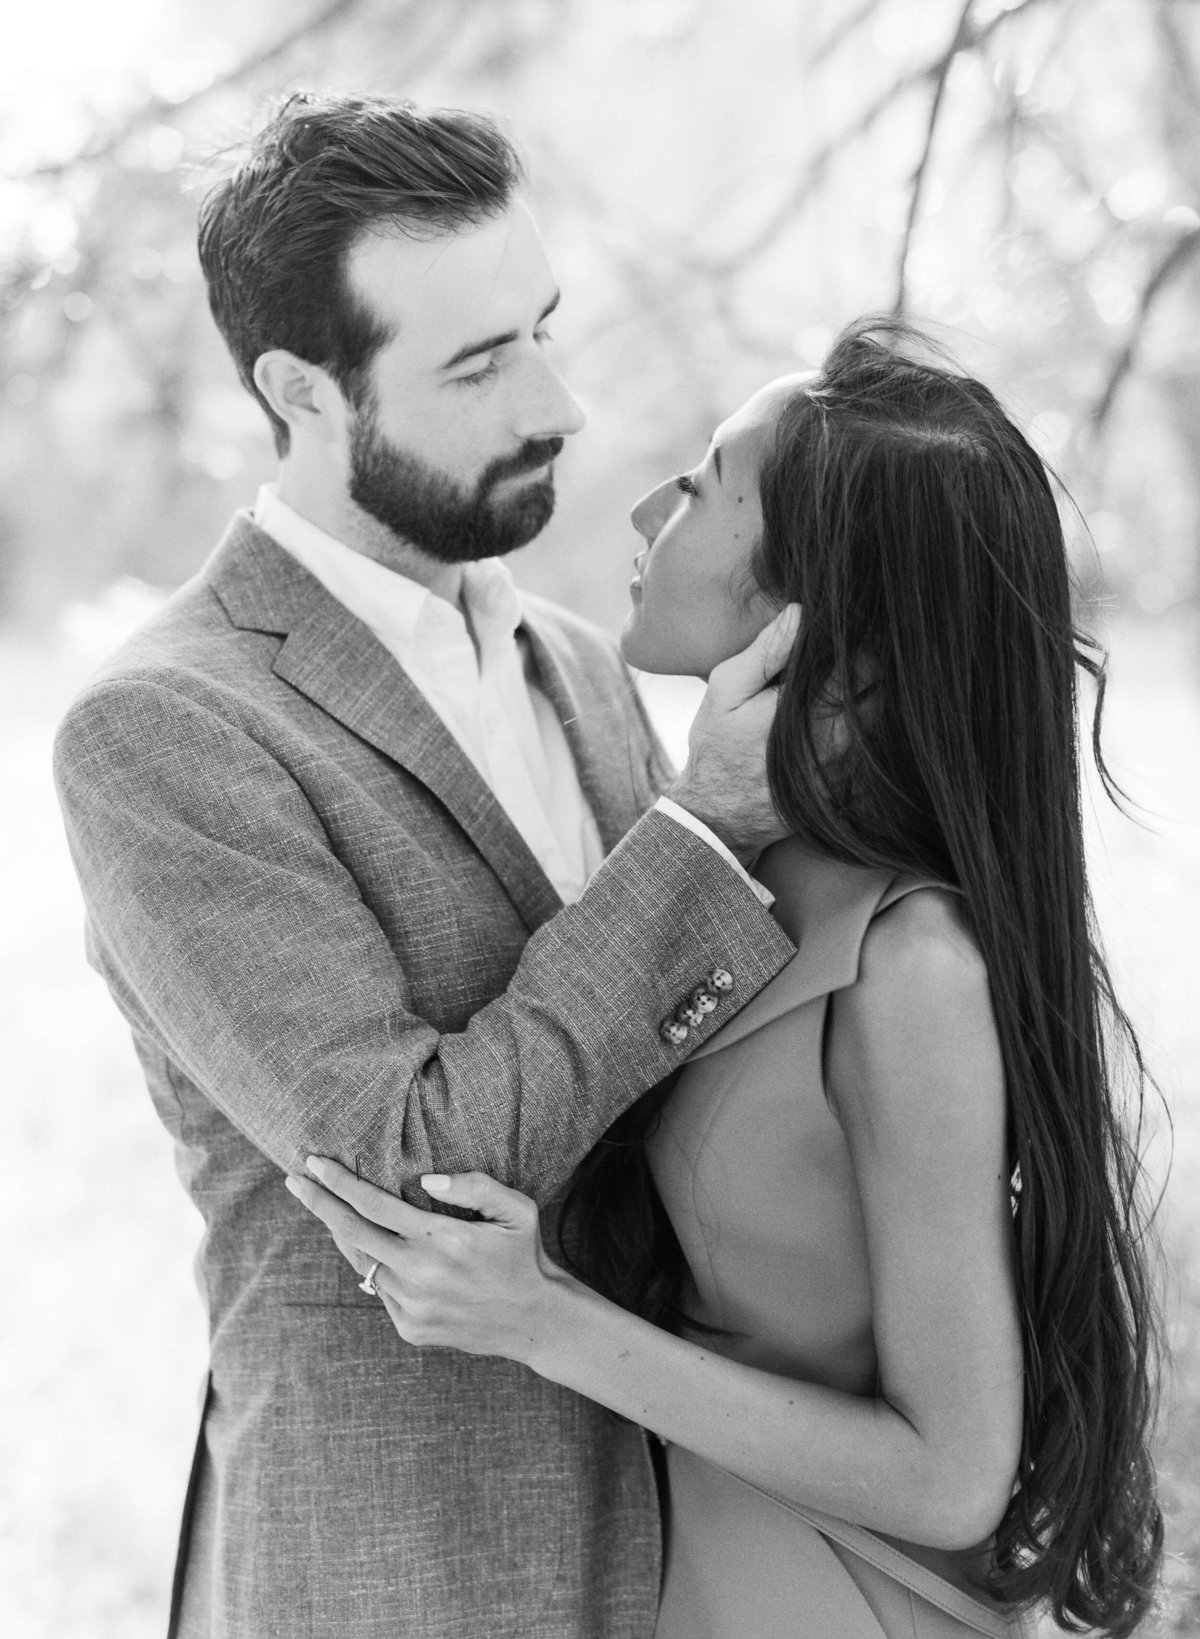 54-KTMerry-engagement-photography-film-black-white